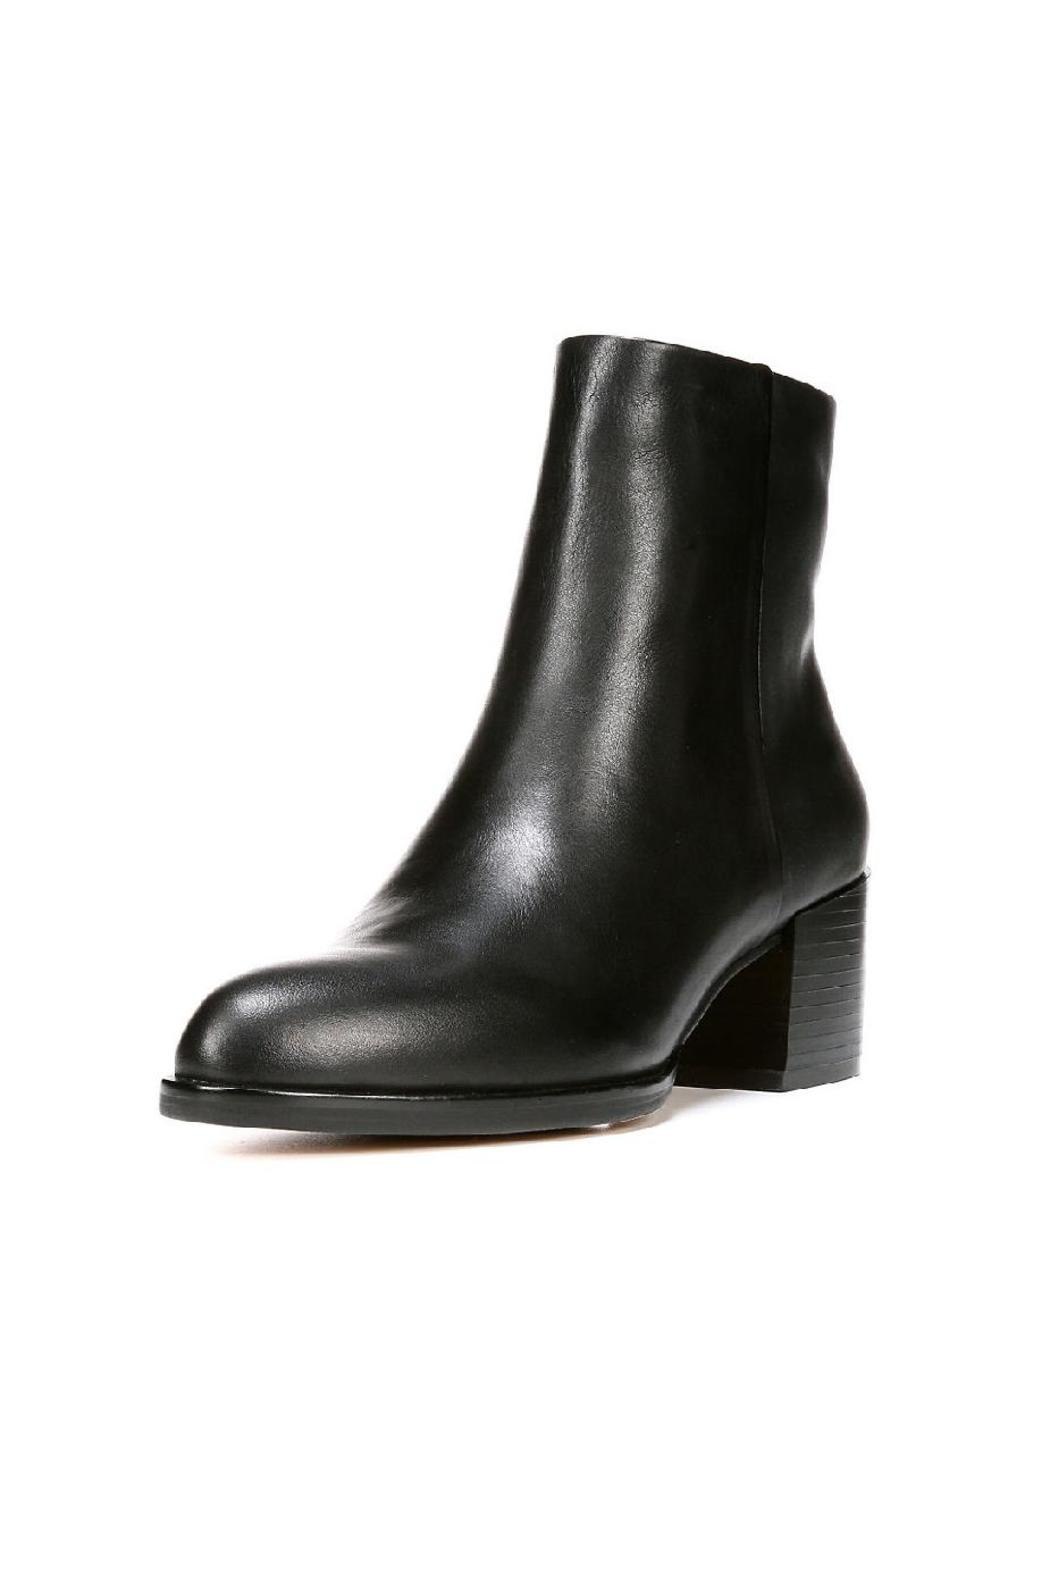 08dfe3f868b5e Sam Edelman Joey Ankle Bootie from Hudson Valley by Bfree — Shoptiques